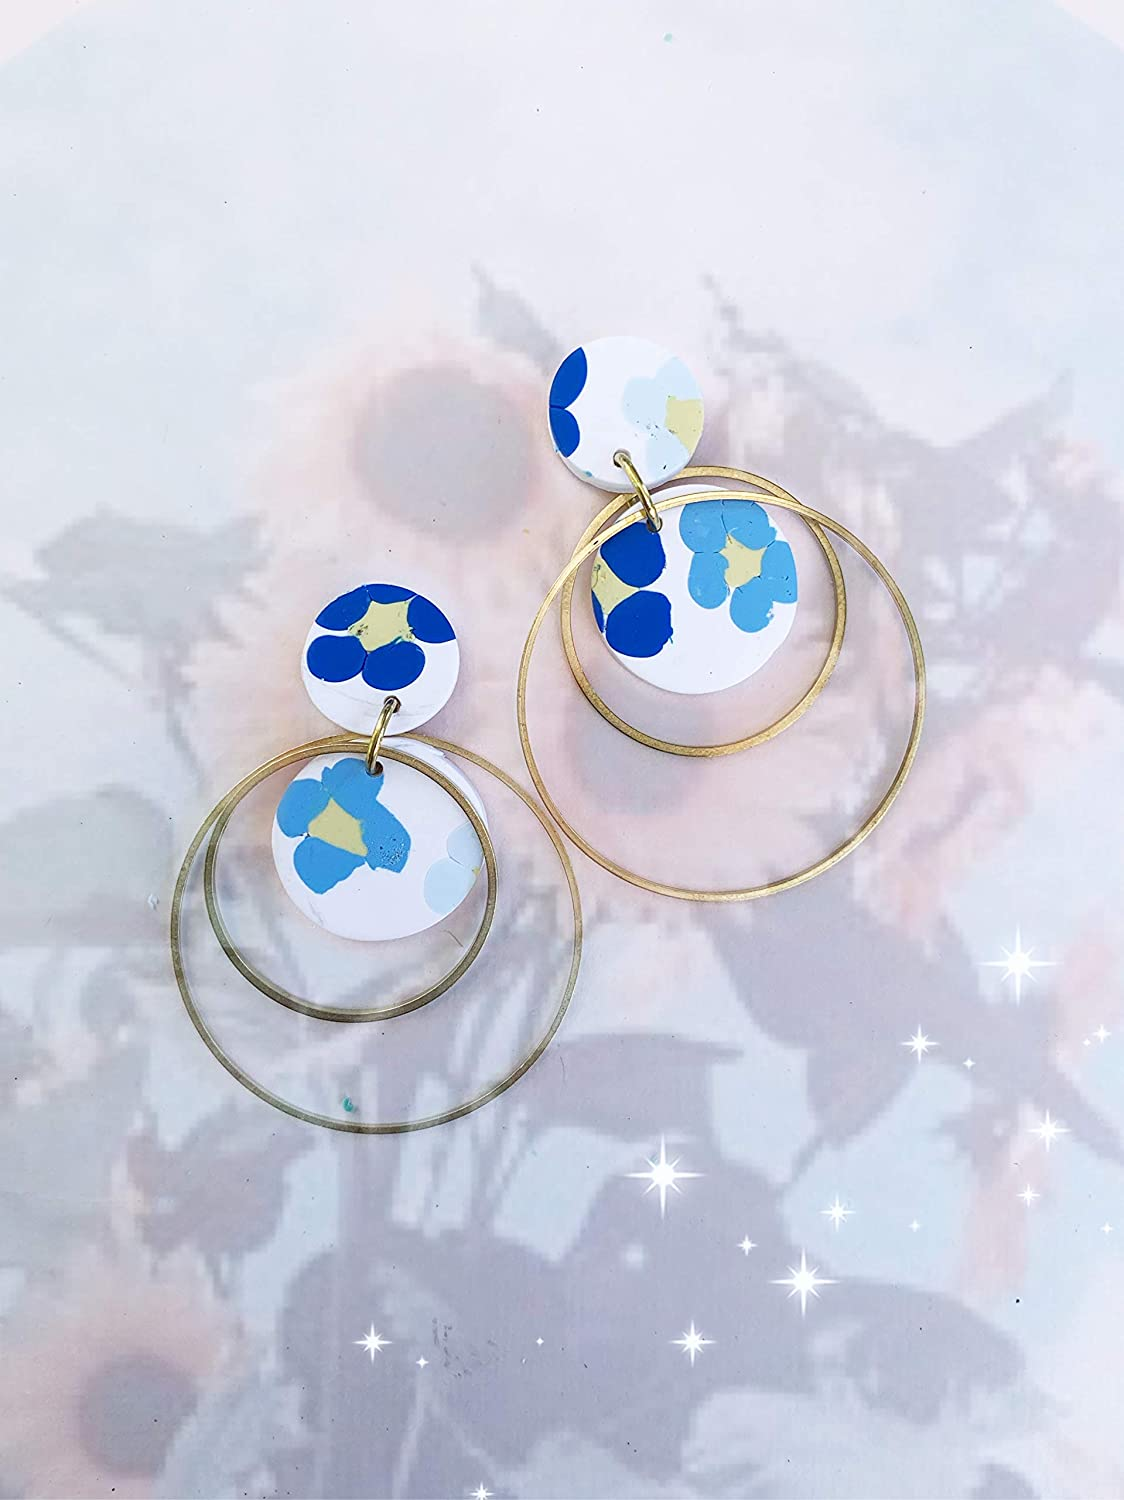 The Yara arch geometric earrings Polymer clay drop earrings statement earrings gifts for her